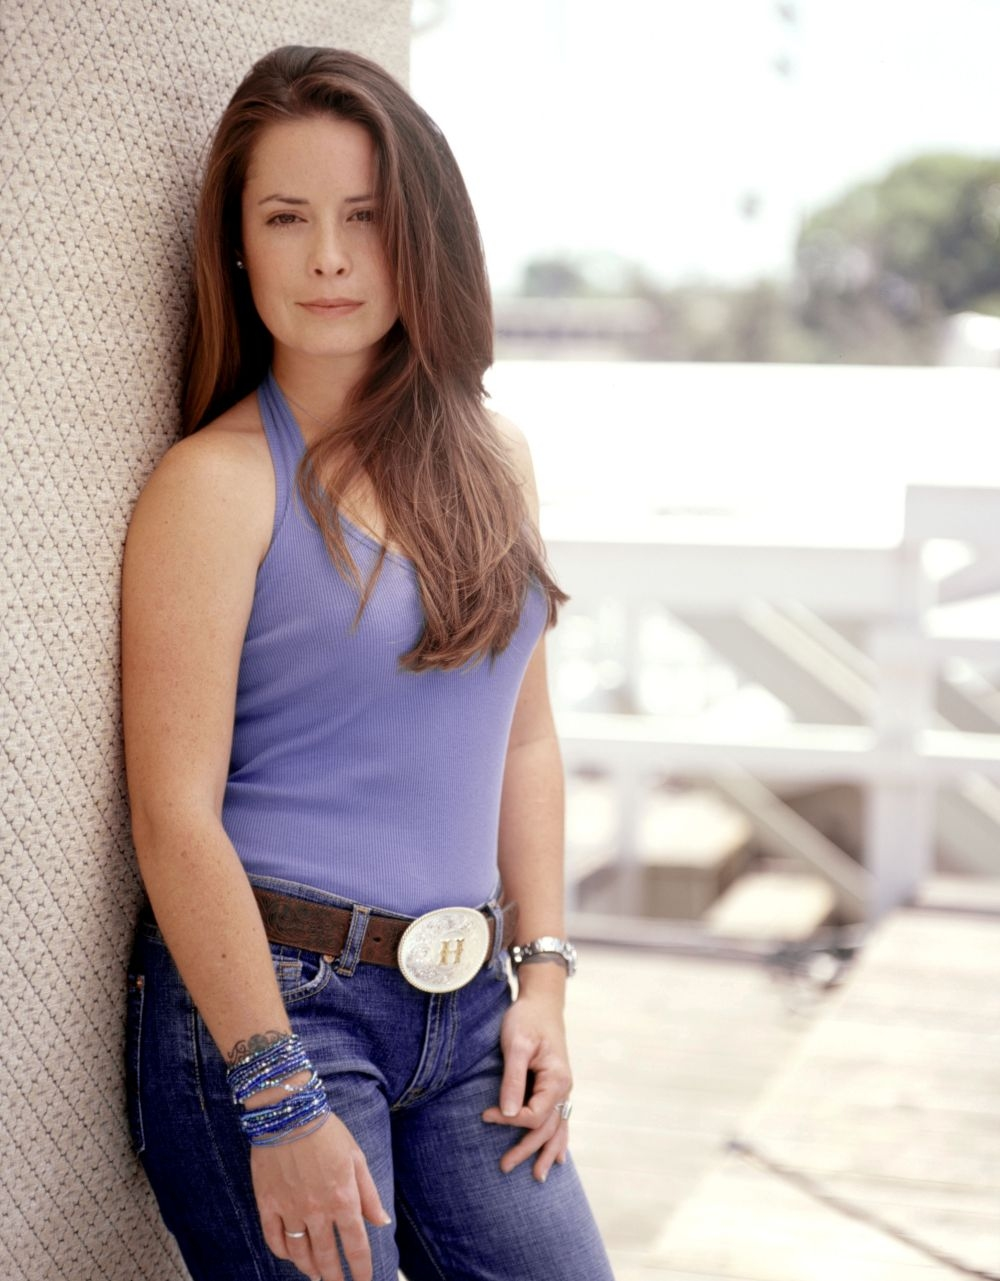 holly marie combs siteholly marie combs 2016, holly marie combs 2017, holly marie combs and shannen doherty, holly marie combs pretty little liars, holly marie combs charmed, holly marie combs 2015, holly marie combs as piper credits, holly marie combs net worth, holly marie combs young, holly marie combs vk, holly marie combs site, holly marie combs husband, holly marie combs vegan, holly marie combs fansite, holly marie combs and shannen doherty cancer, holly marie combs instagram, holly marie combs dates, holly marie combs facebook, holly marie combs wiki, holly marie combs insta